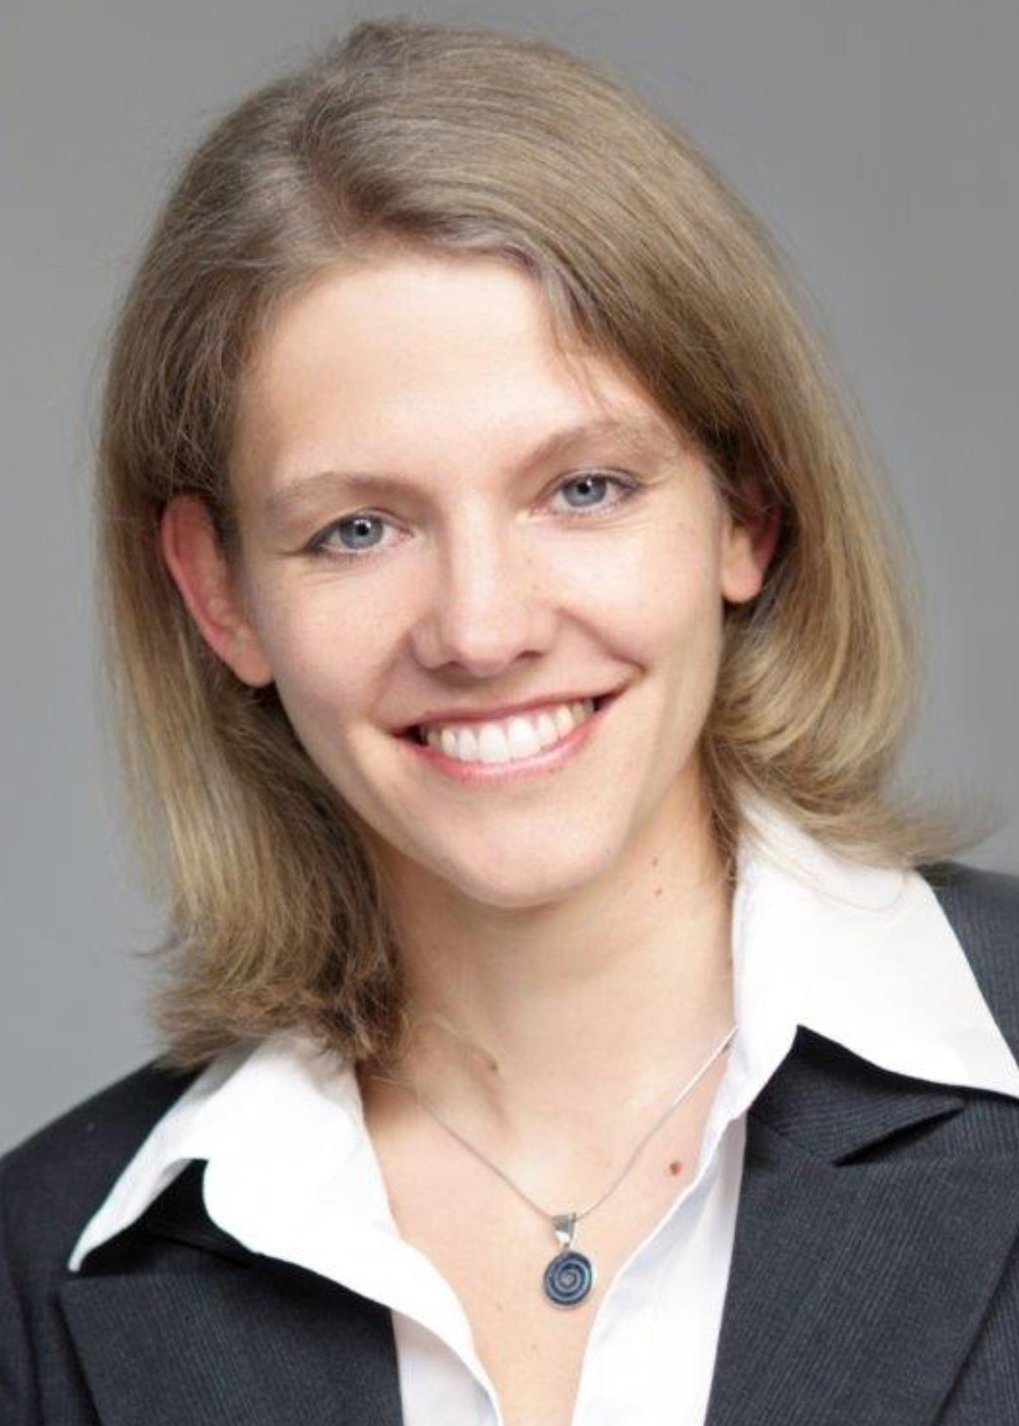 Professor Bettina Lotsch